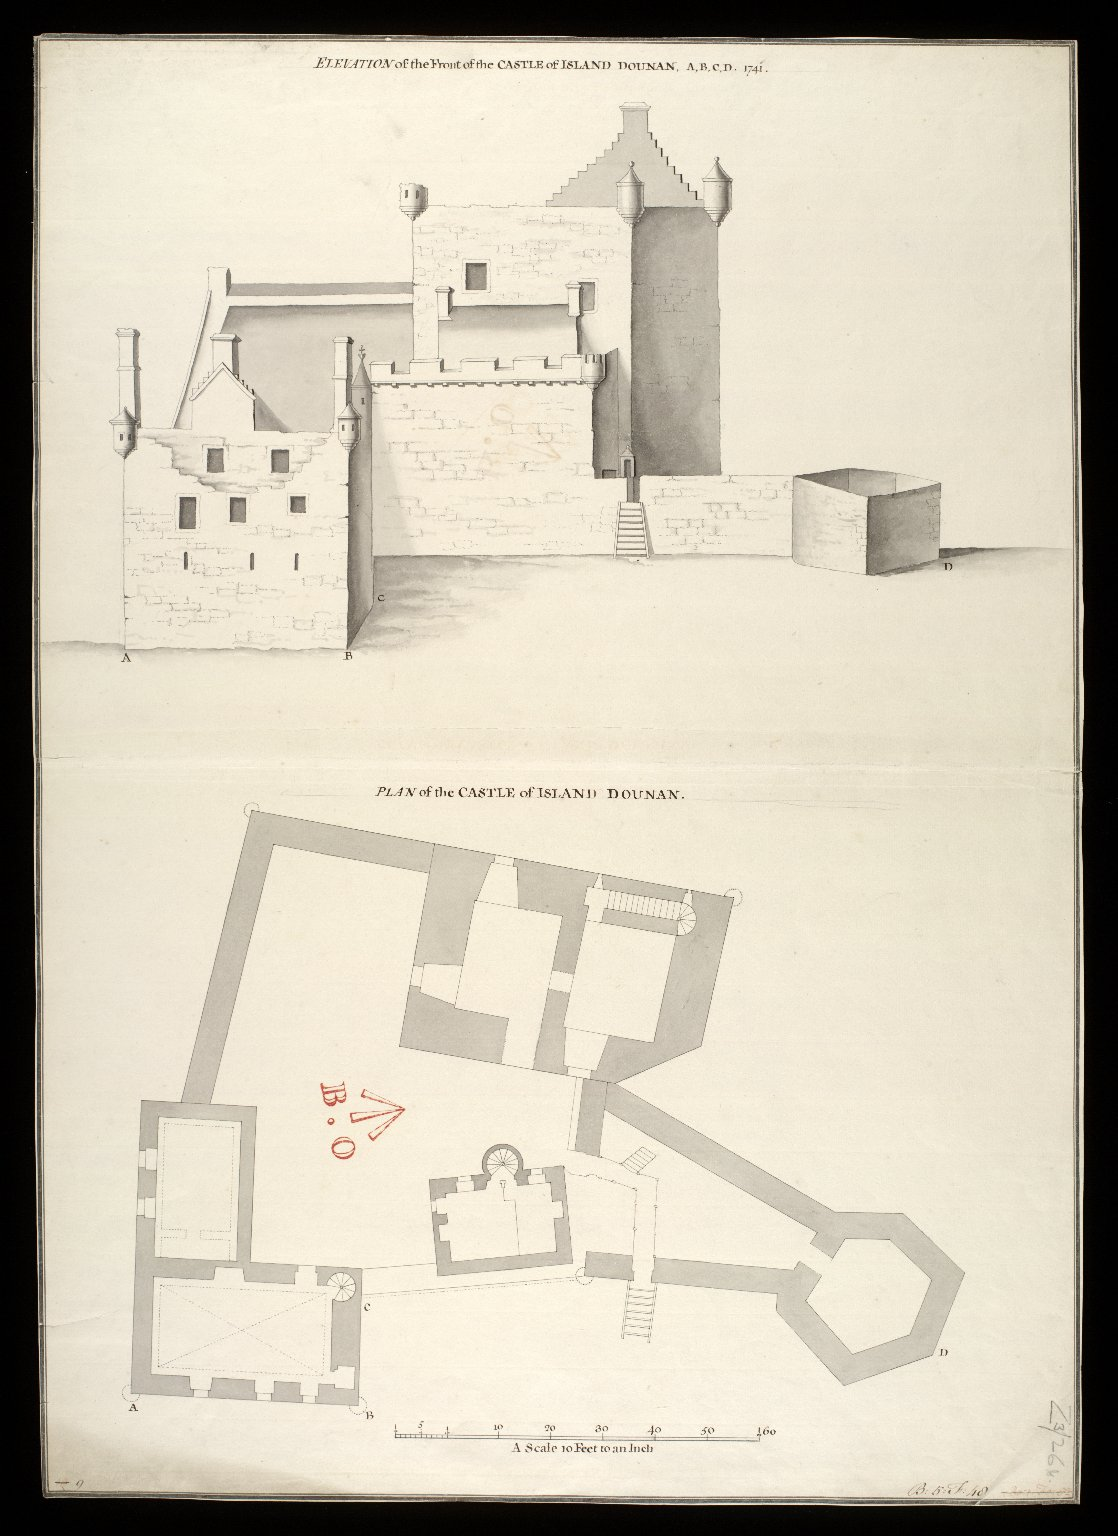 Plan of the Castle of Island Dounan : elevation of the front of the Castle of Island Dounan [i.e. Eilean Donan] A,B,C,D [between 1712 and 1716] [copy] 1741 [1 of 1]